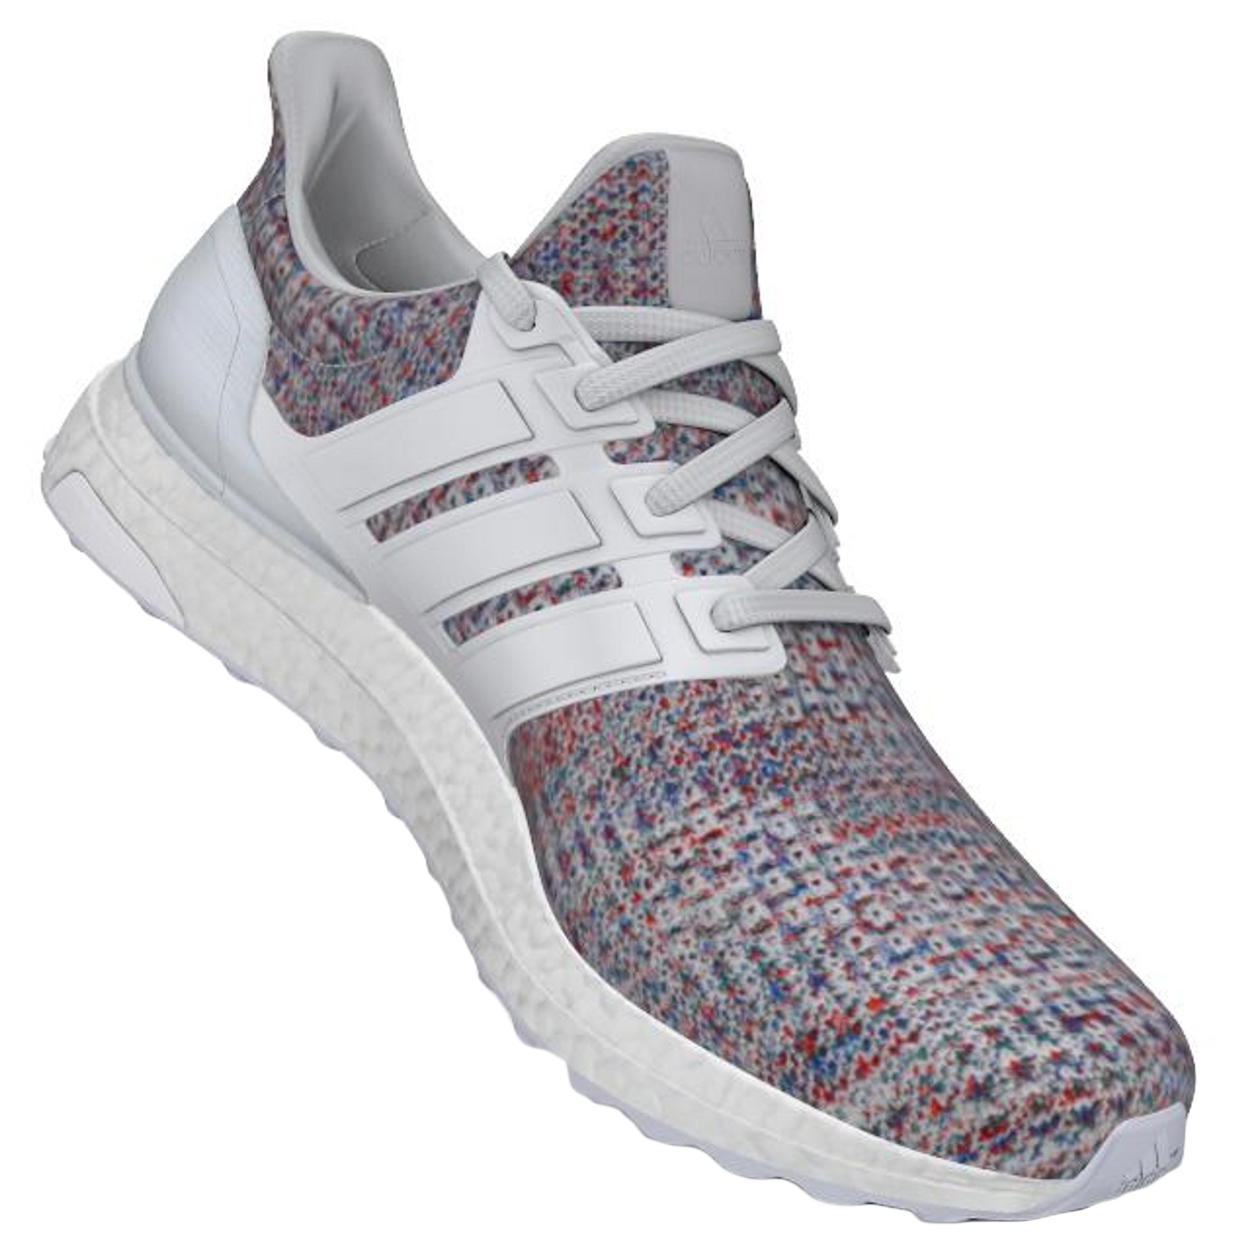 0542526c119dc Adidas Ultraboost - Running Shoes Men s